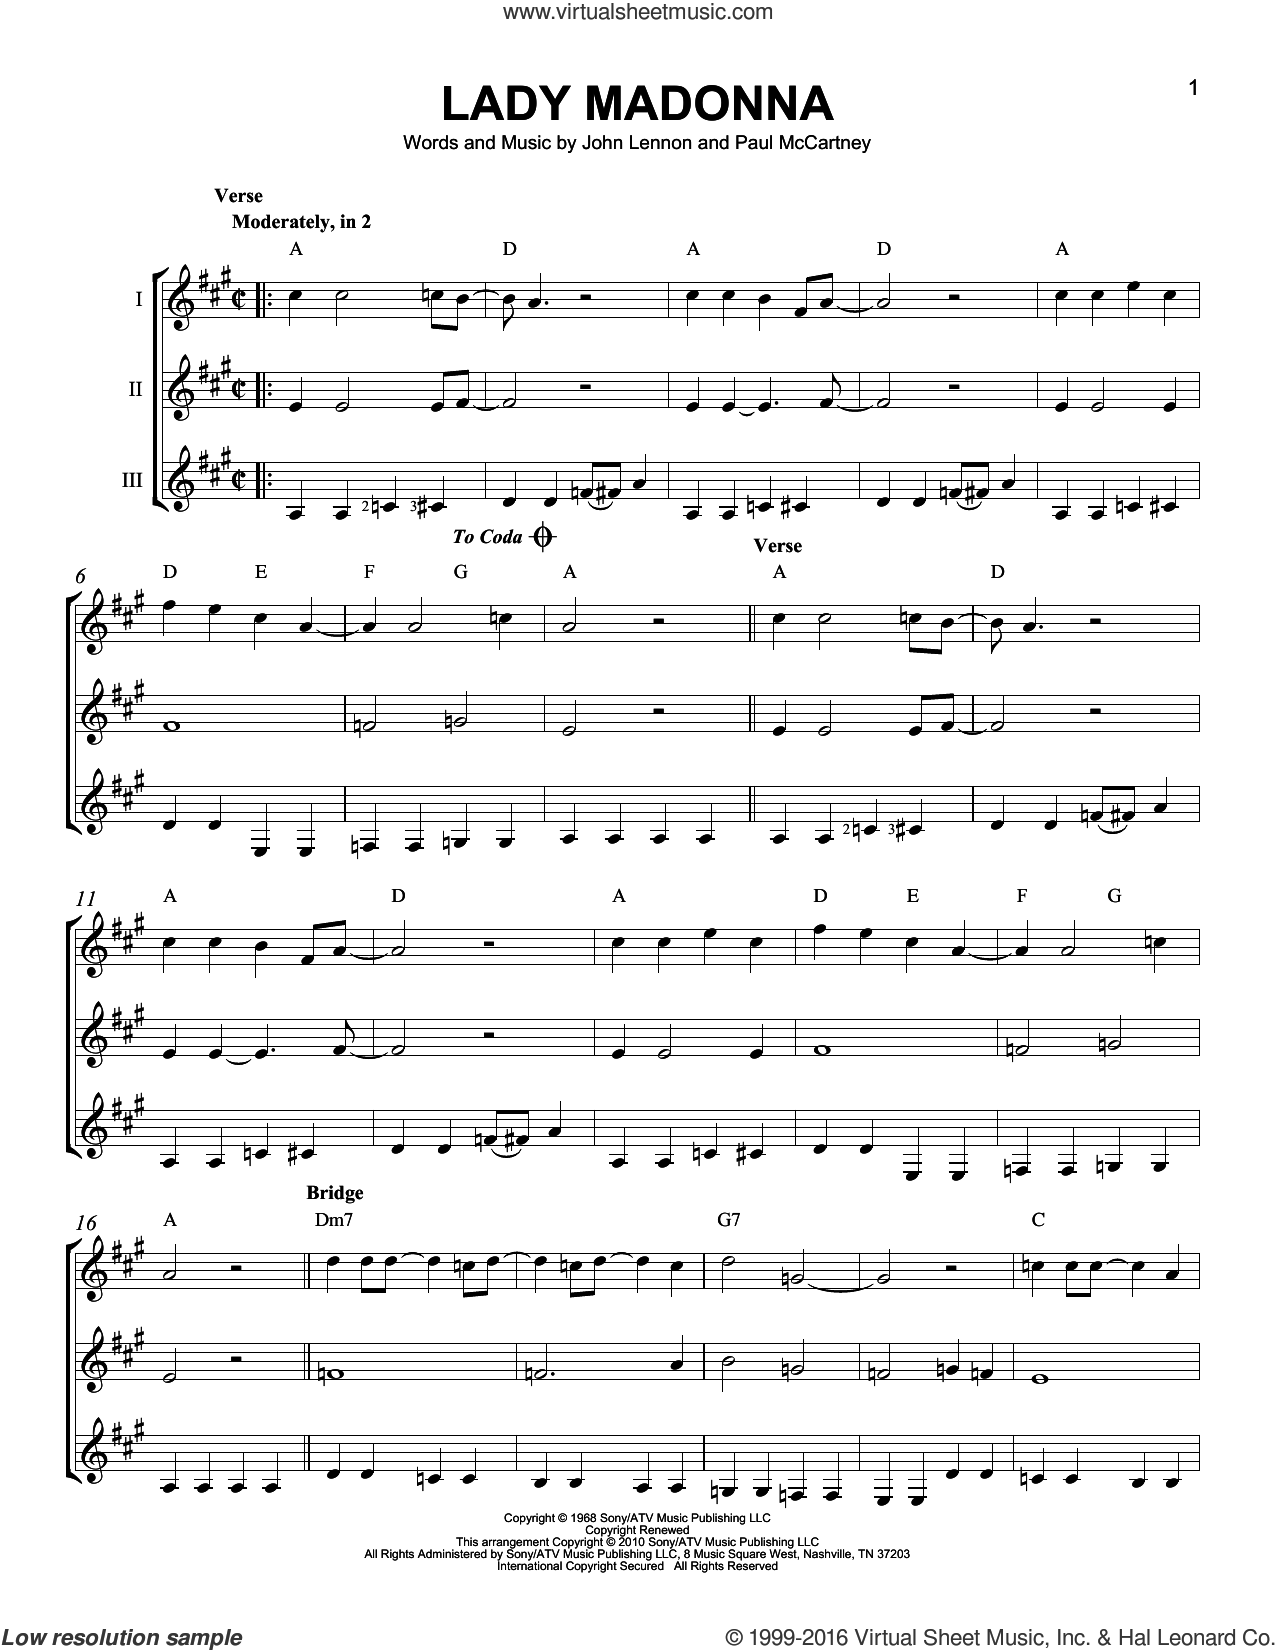 Lady Madonna sheet music for guitar ensemble by The Beatles, John Lennon and Paul McCartney, intermediate skill level